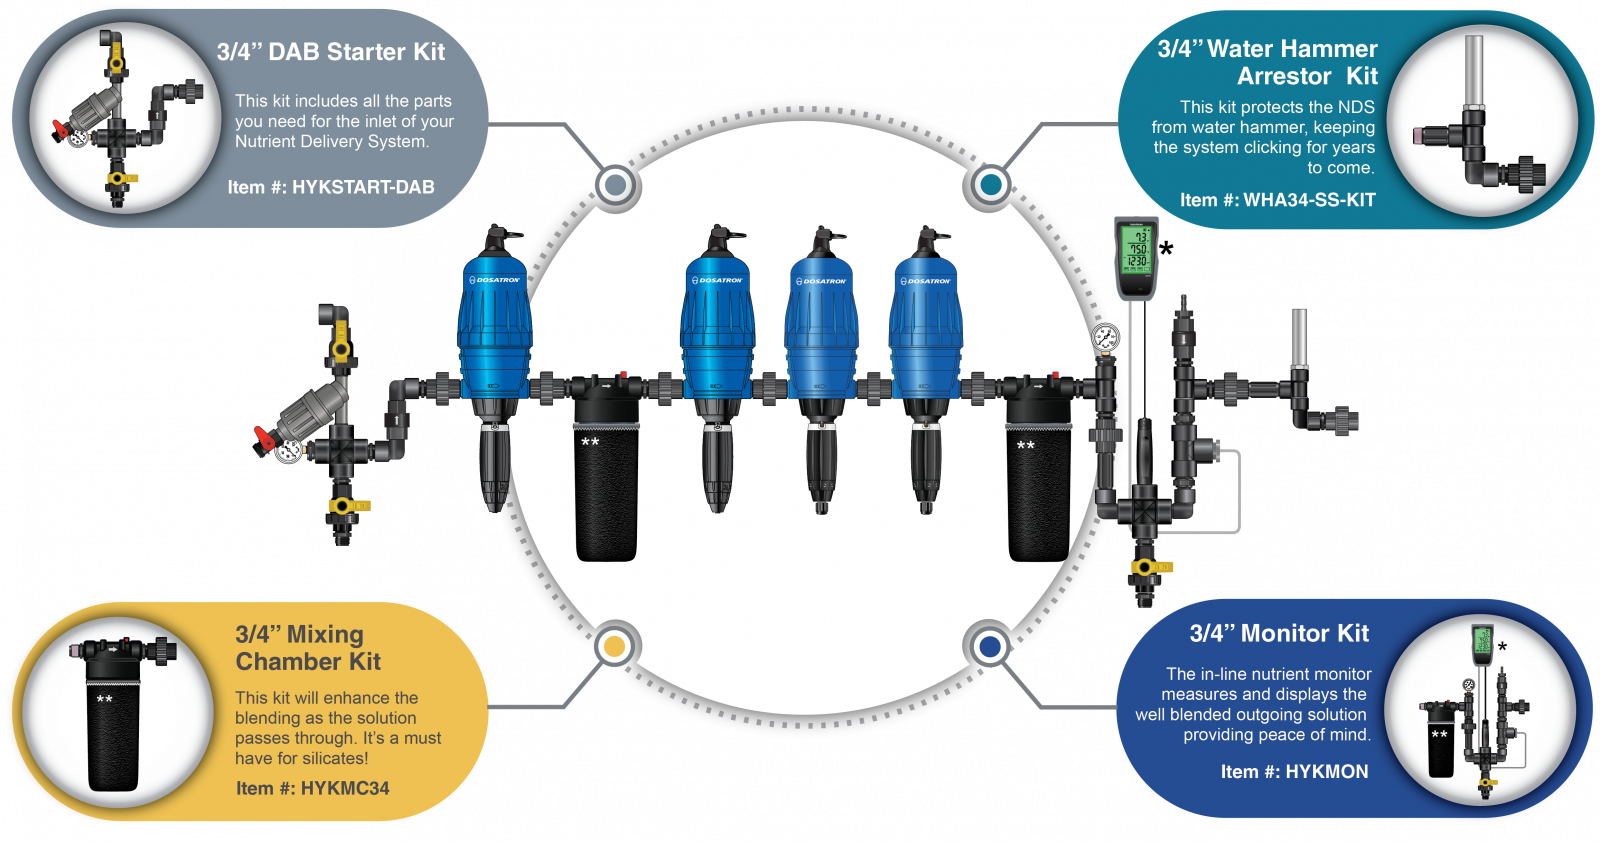 Provide increased quality, along with making the process of blending and dispensing nutrients easier and more accurate.